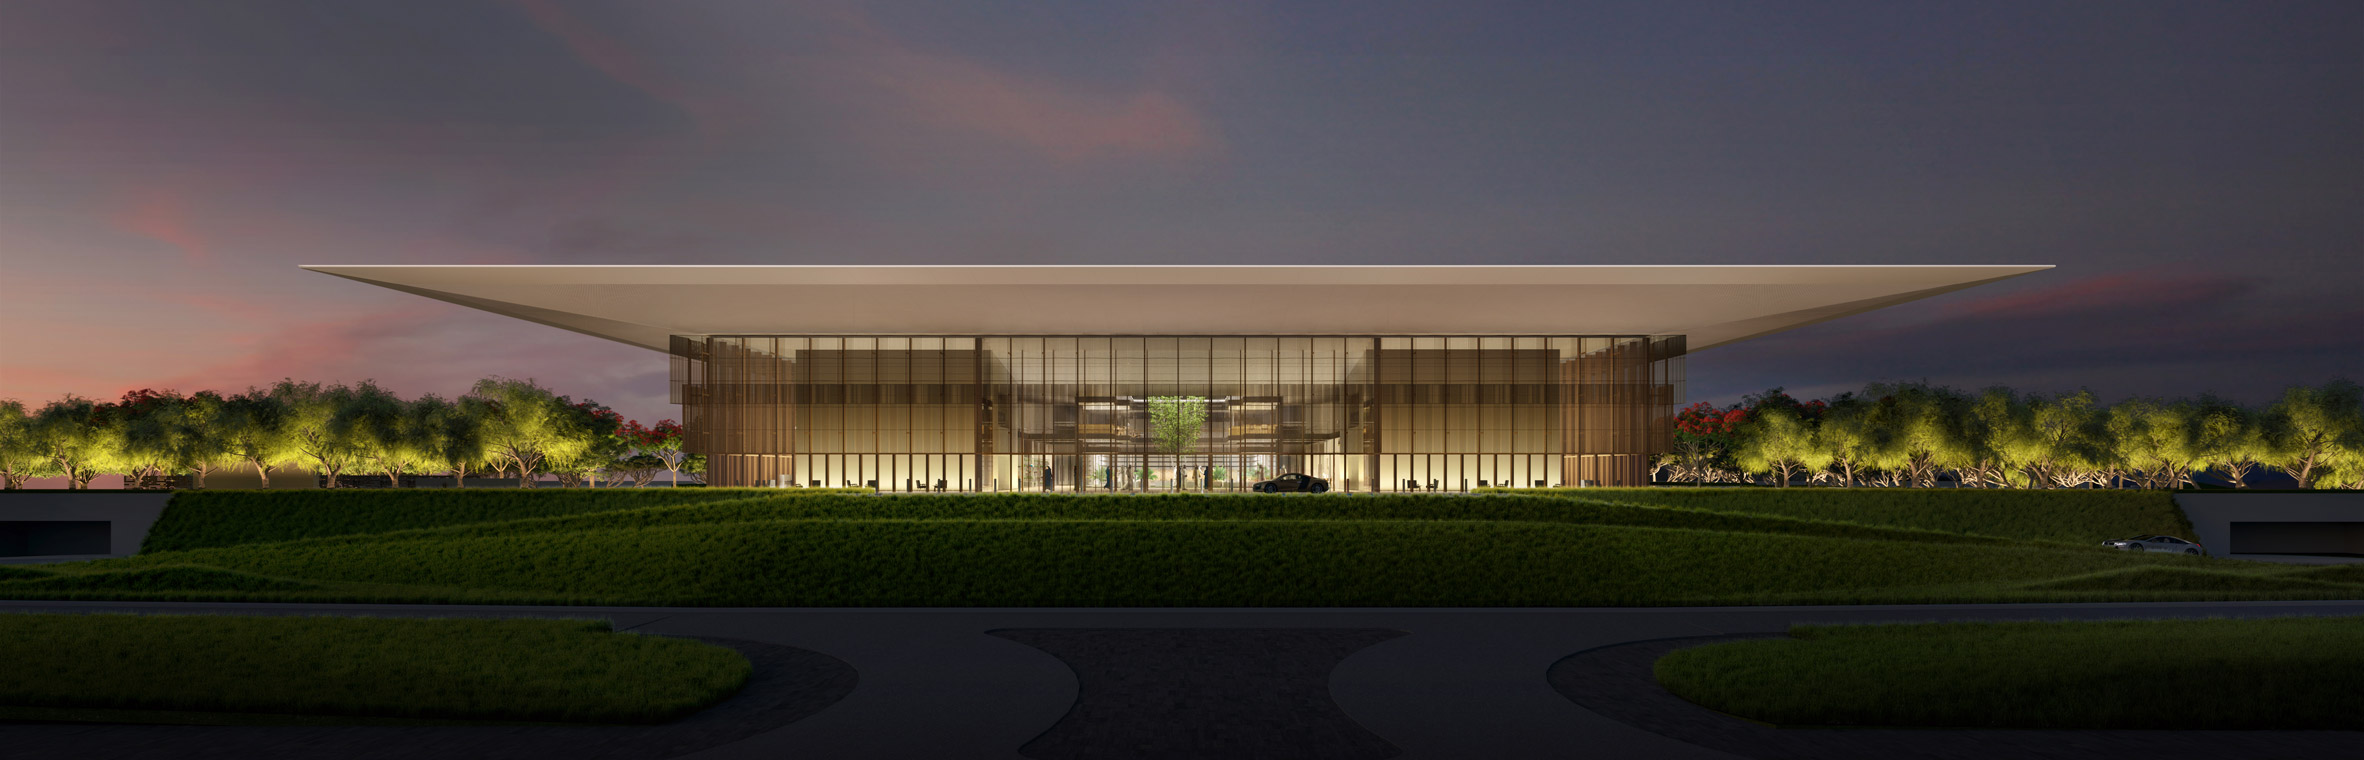 Foster + Partners design the House of Wisdom library for Sharjah